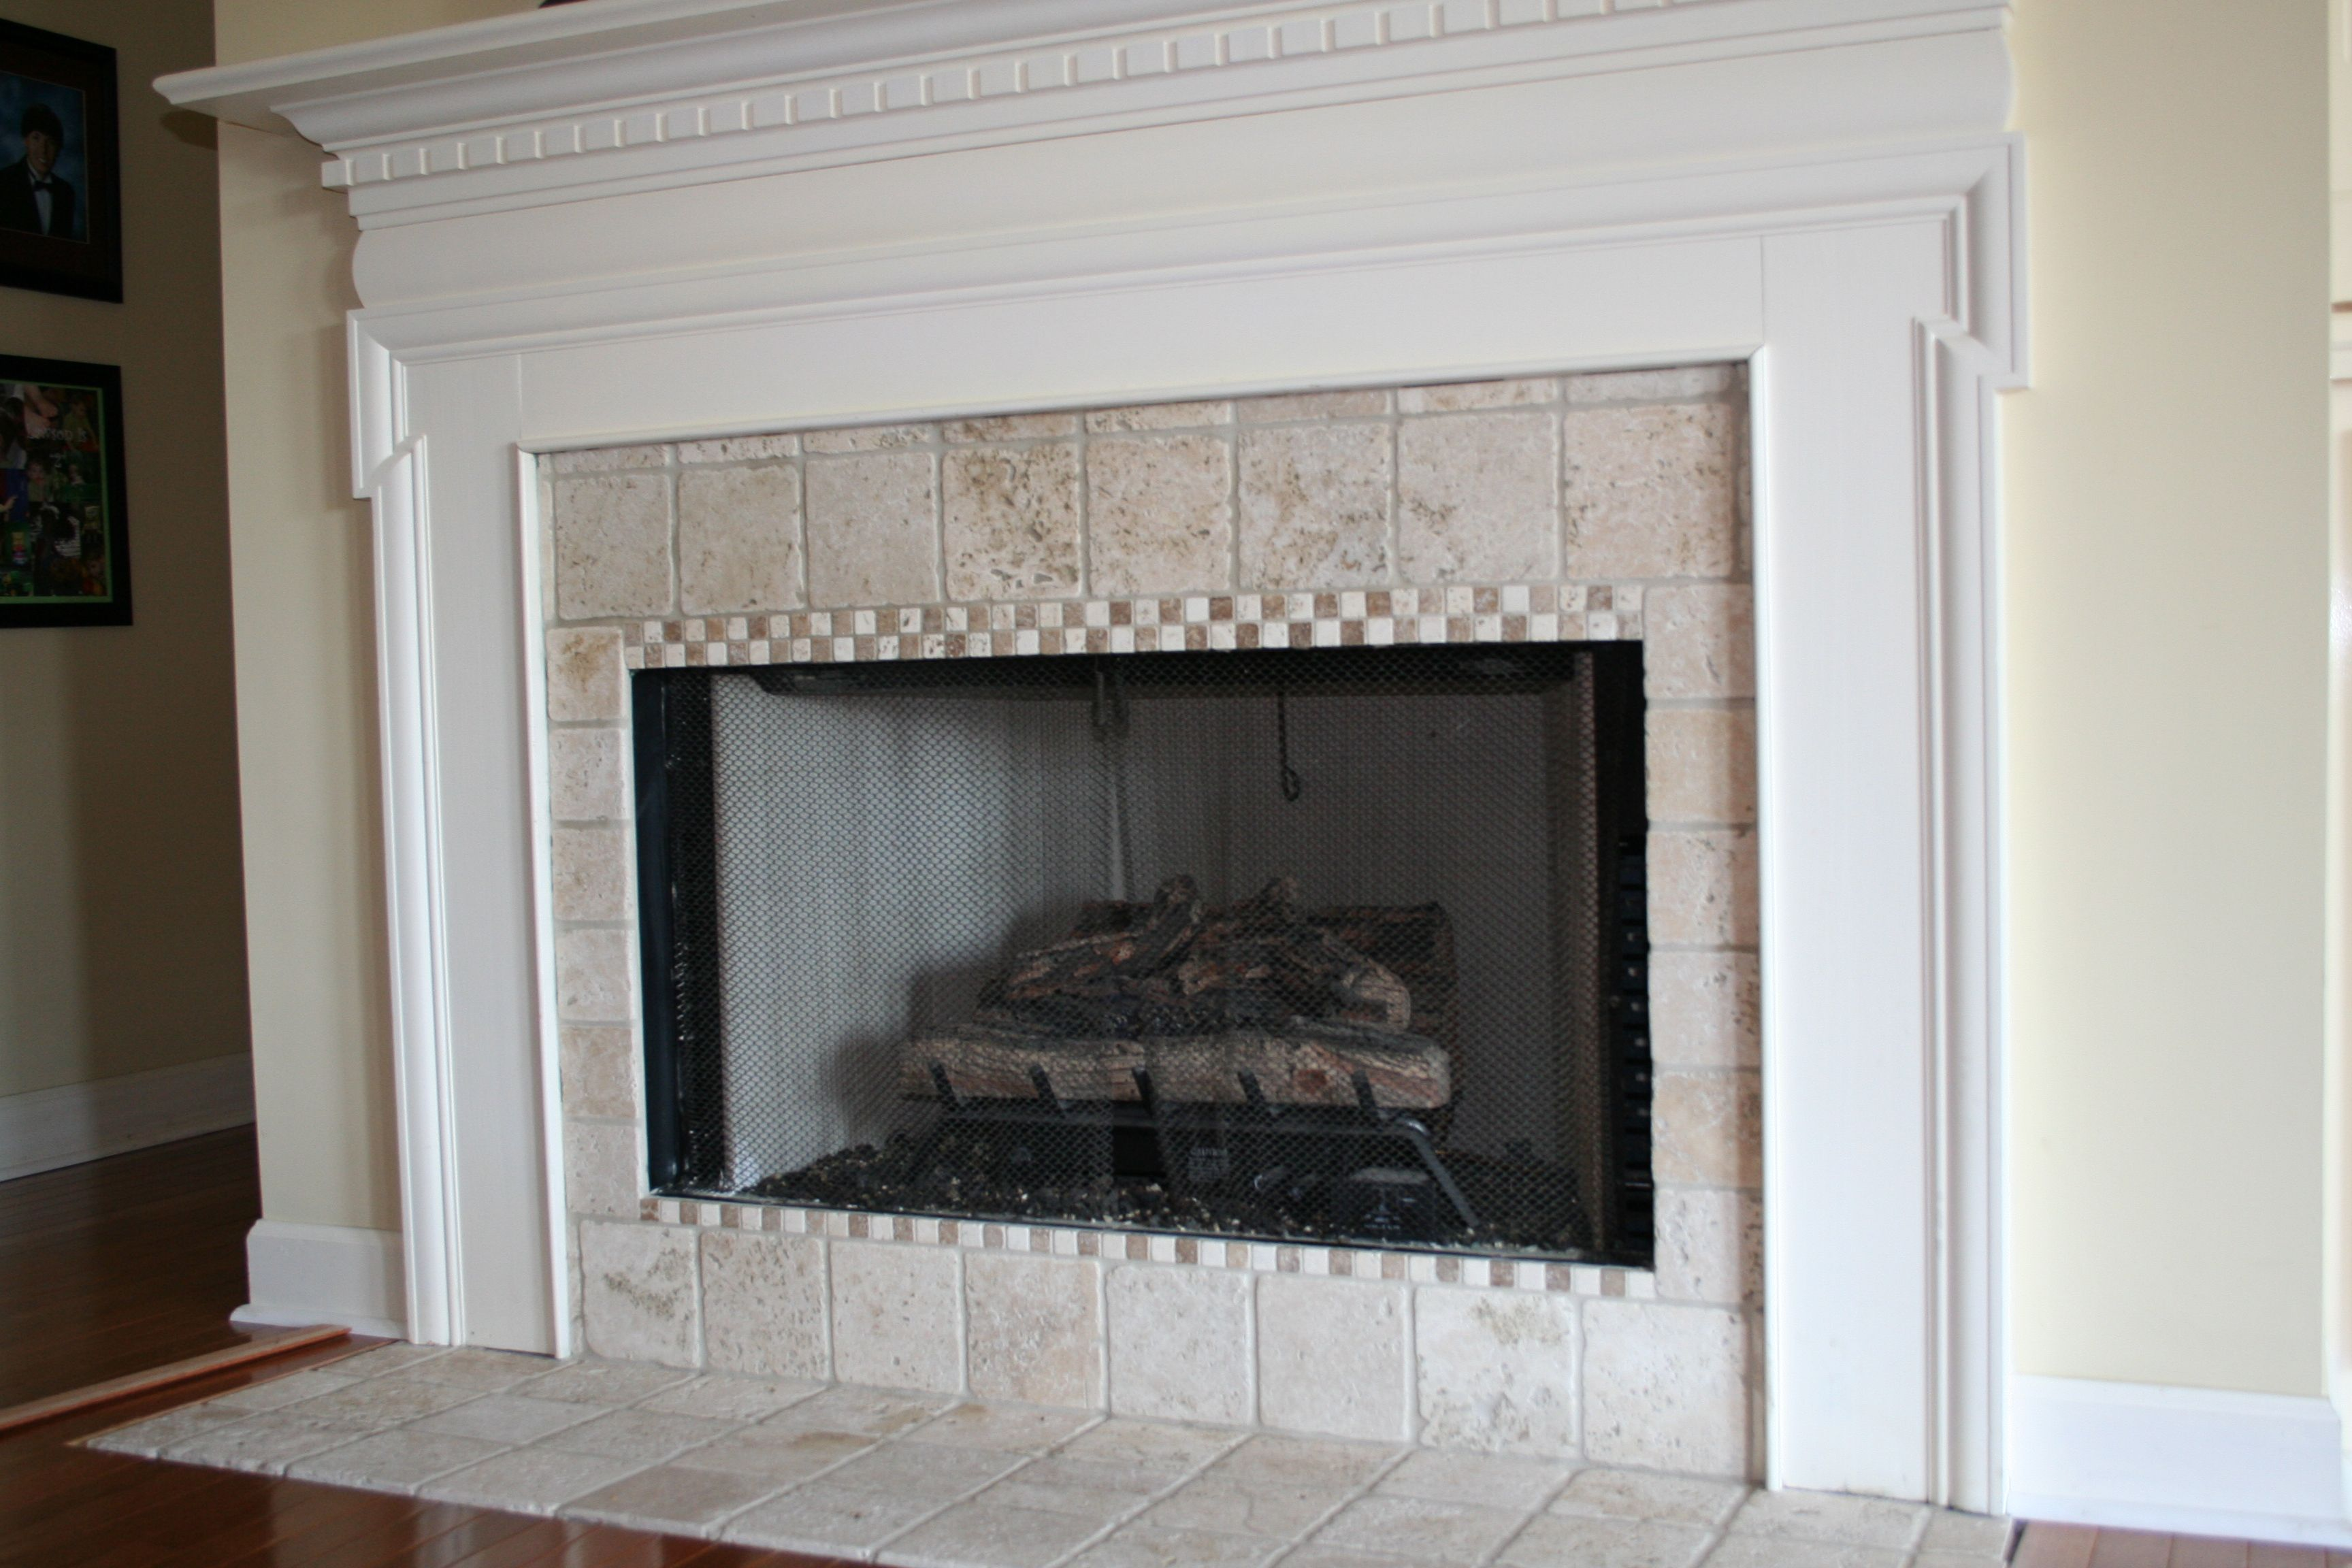 fireplace tile design ideas 1000 images about fireplaces makeovers on pinterest faux stone fireplaces fireplaces and fireplace mantels fireplace